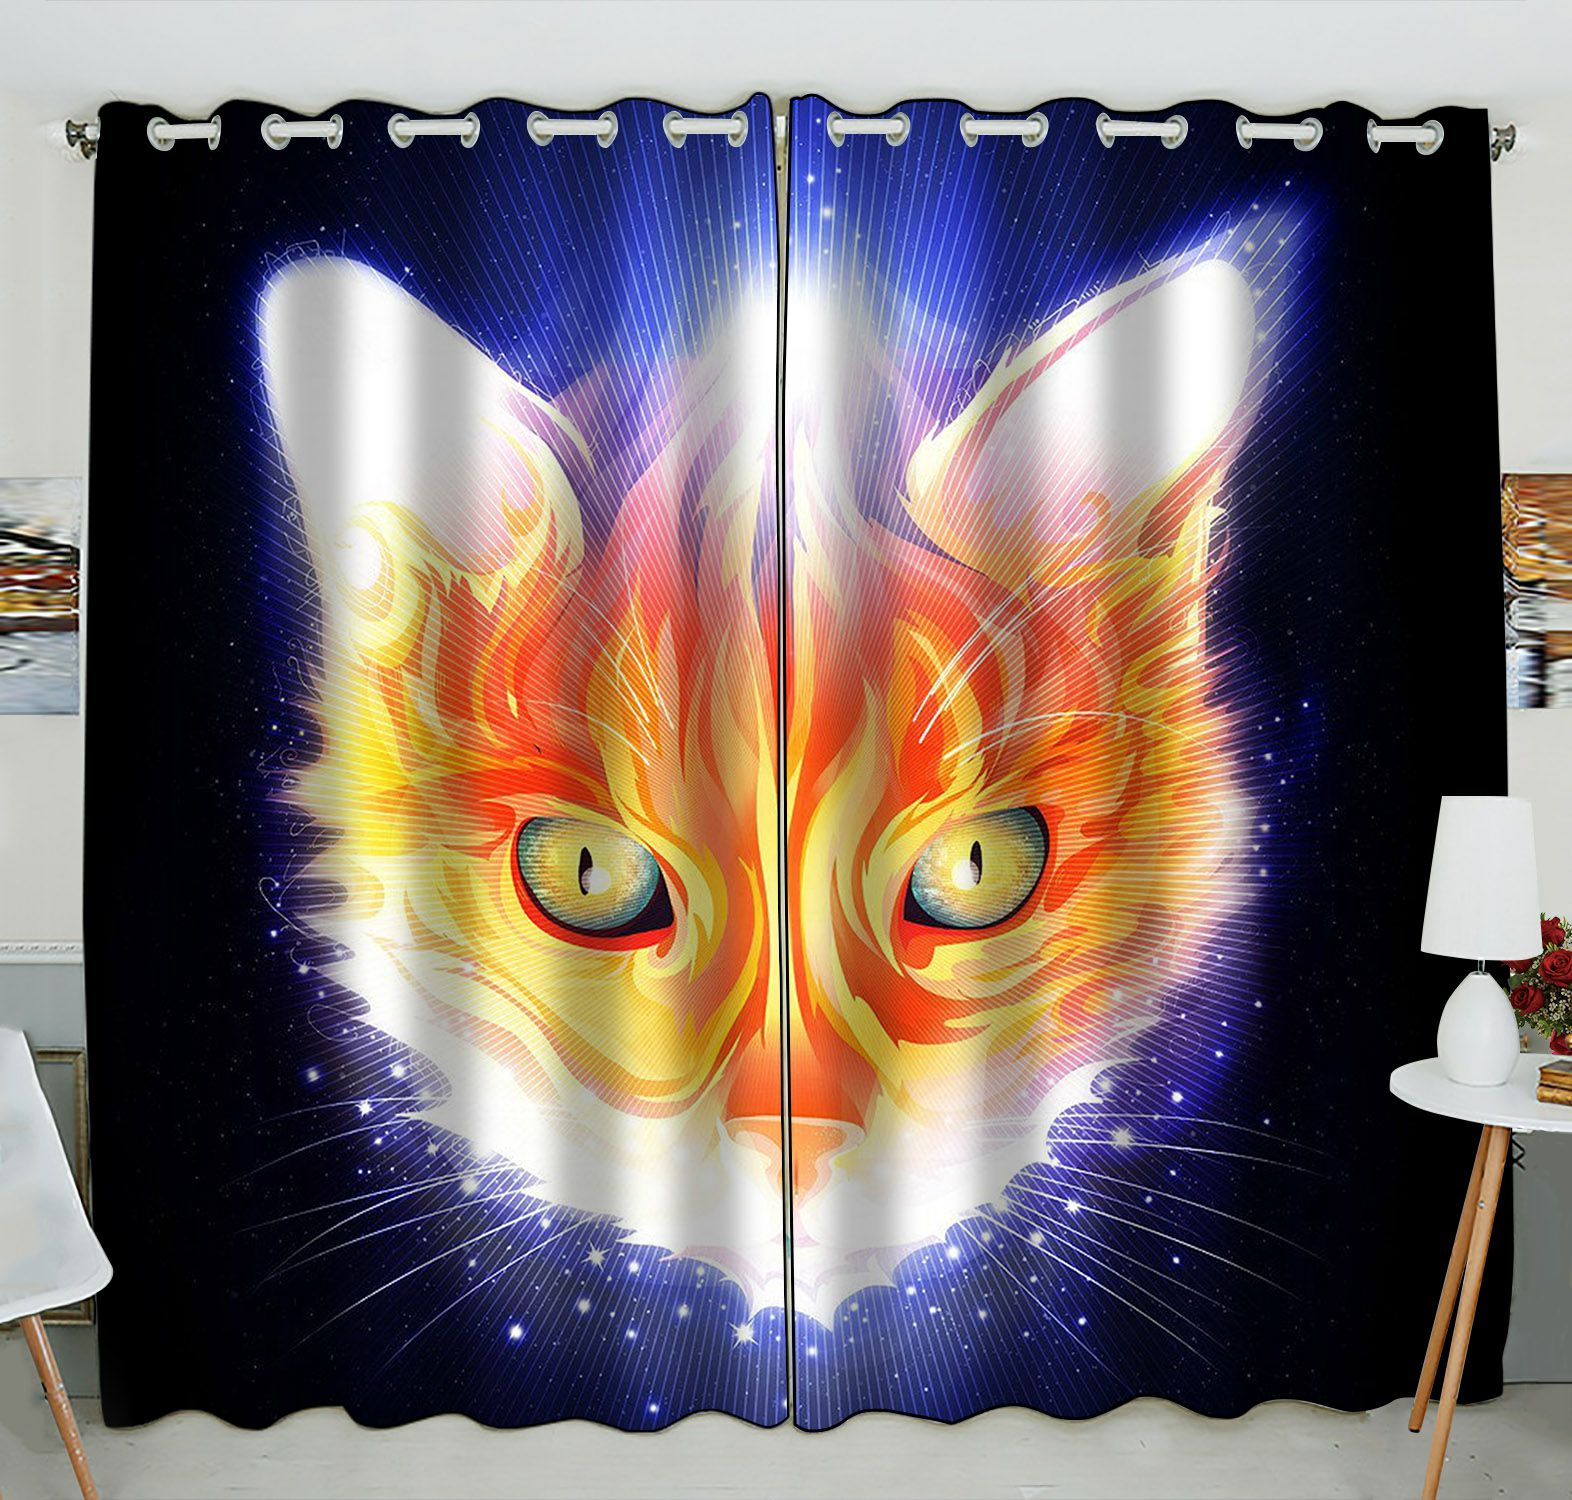 ZKGK Animals Kitten Cat Window Curtain Drapery/Panels/Treatment For Living Room Bedroom Kids Rooms 52x84 inches Two Panel